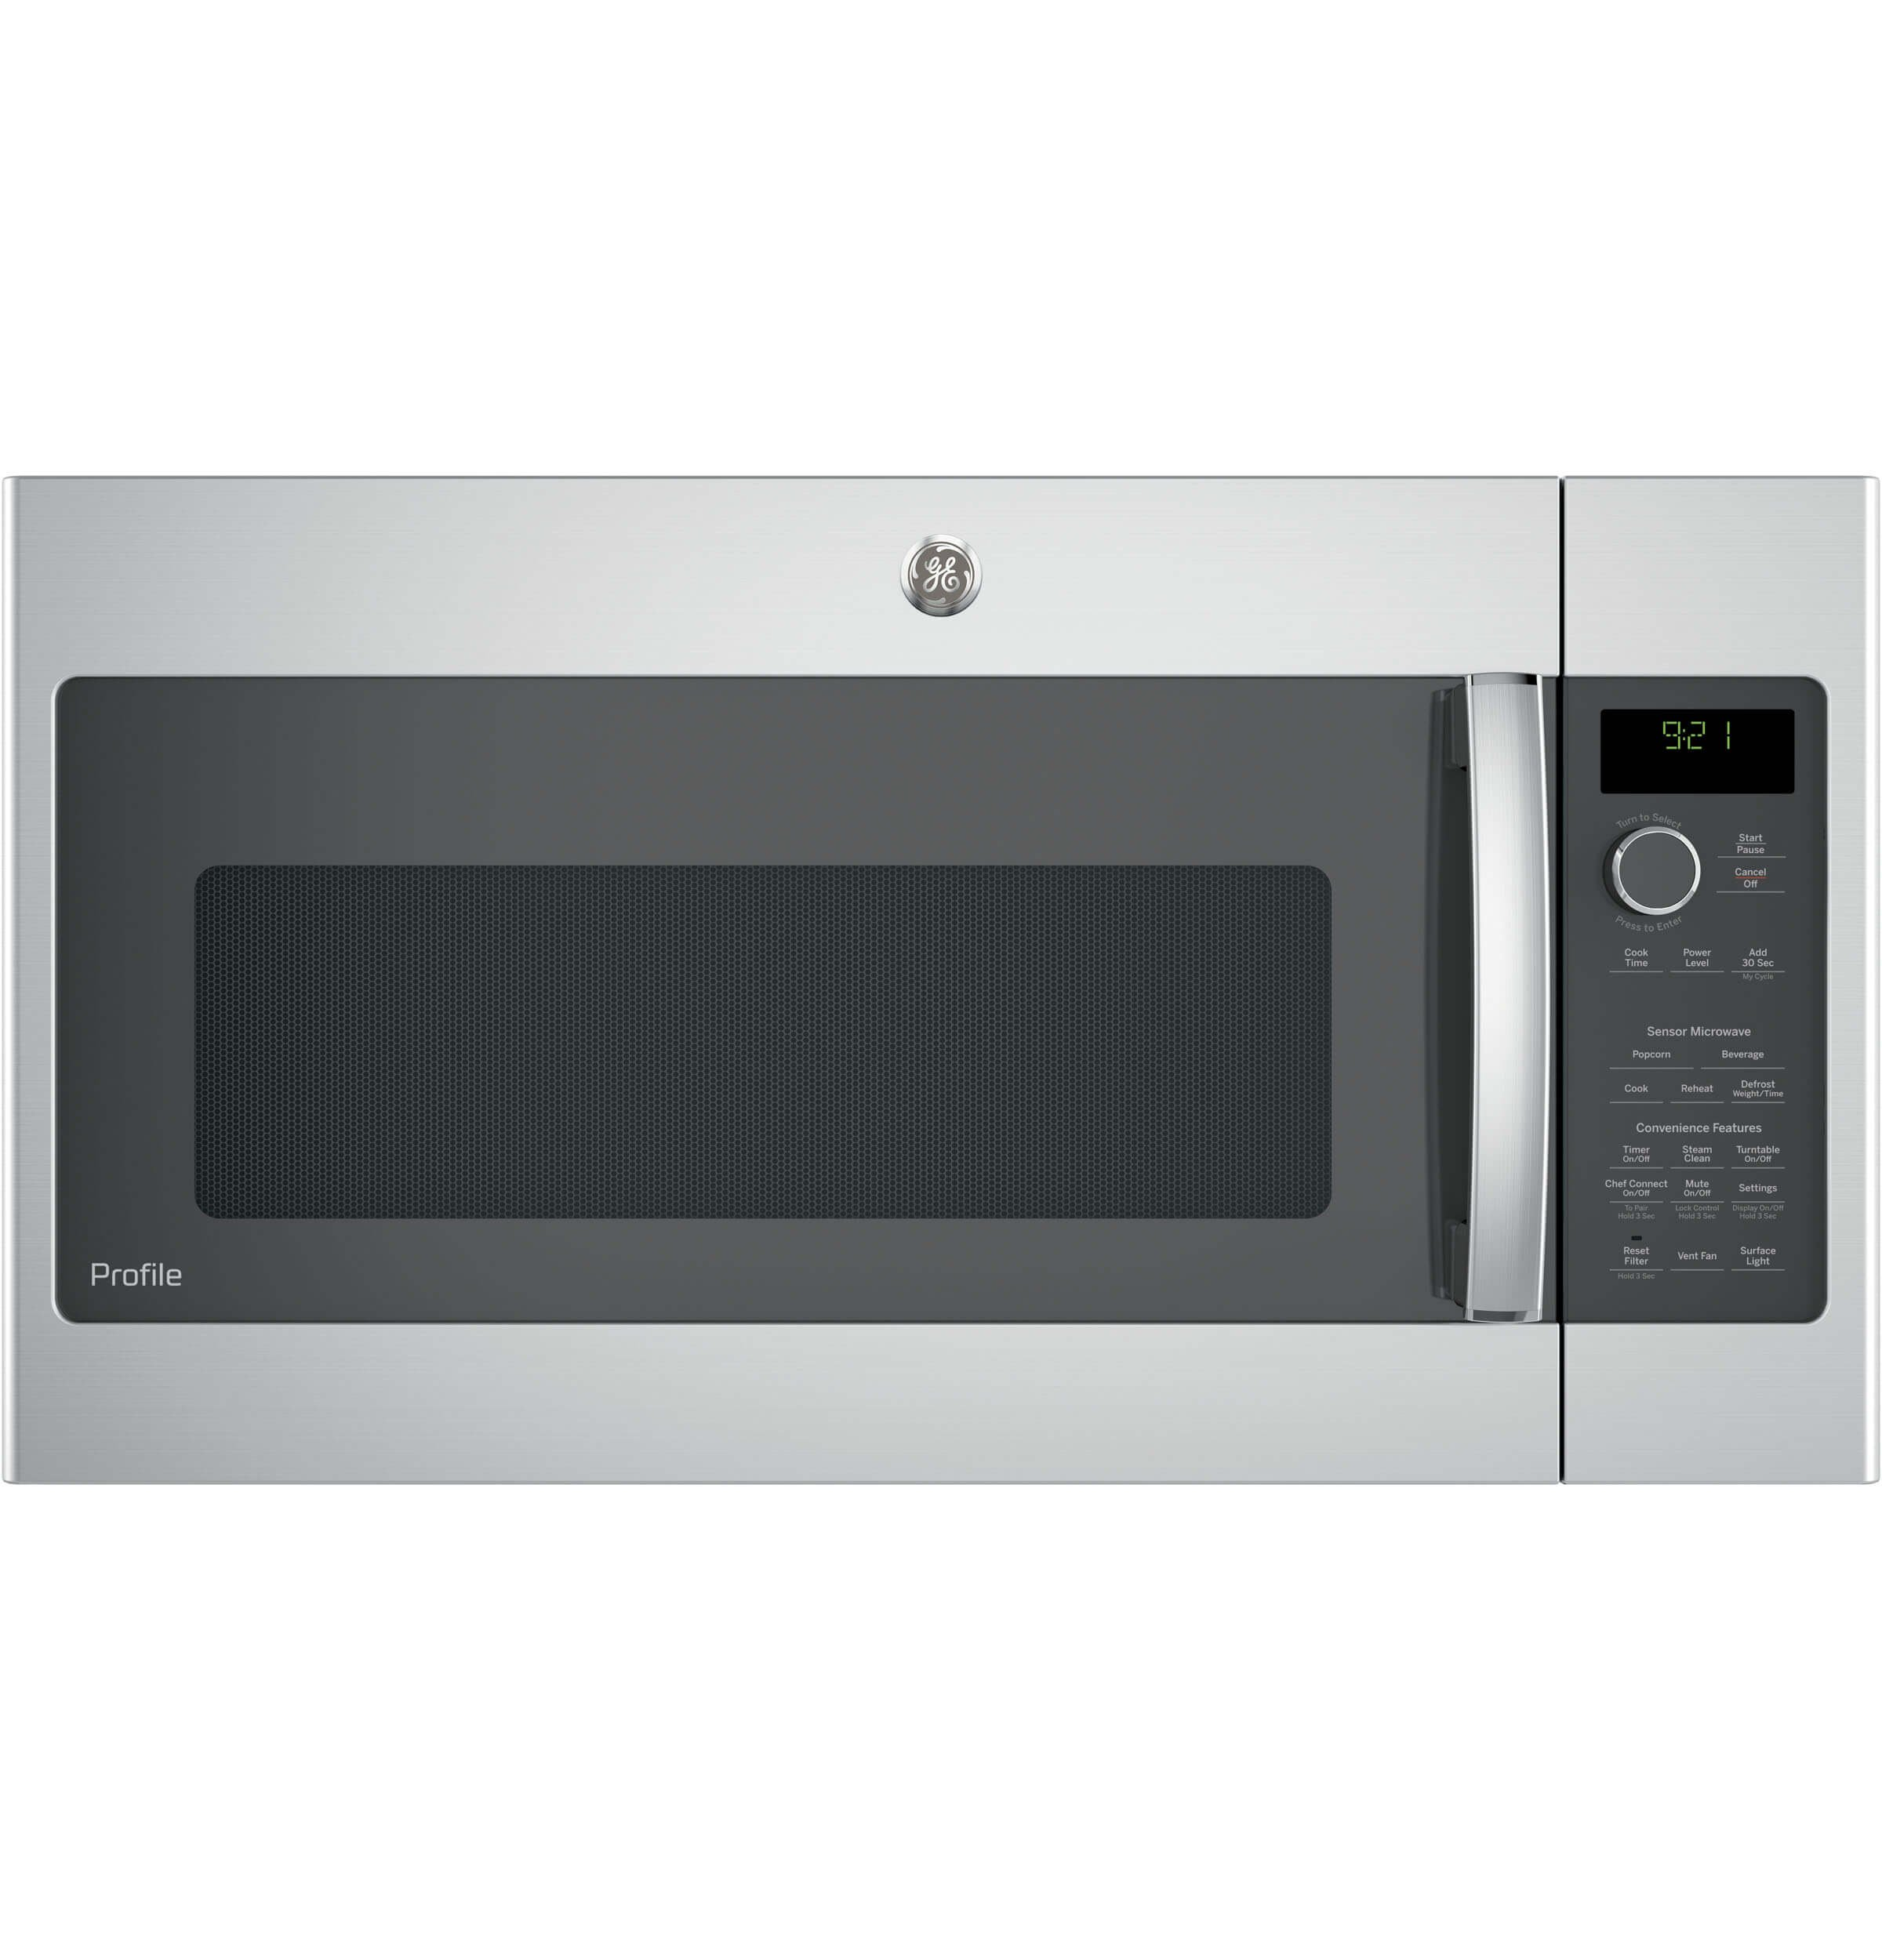 GE PVM9215SKSS Microwave Oven by GE